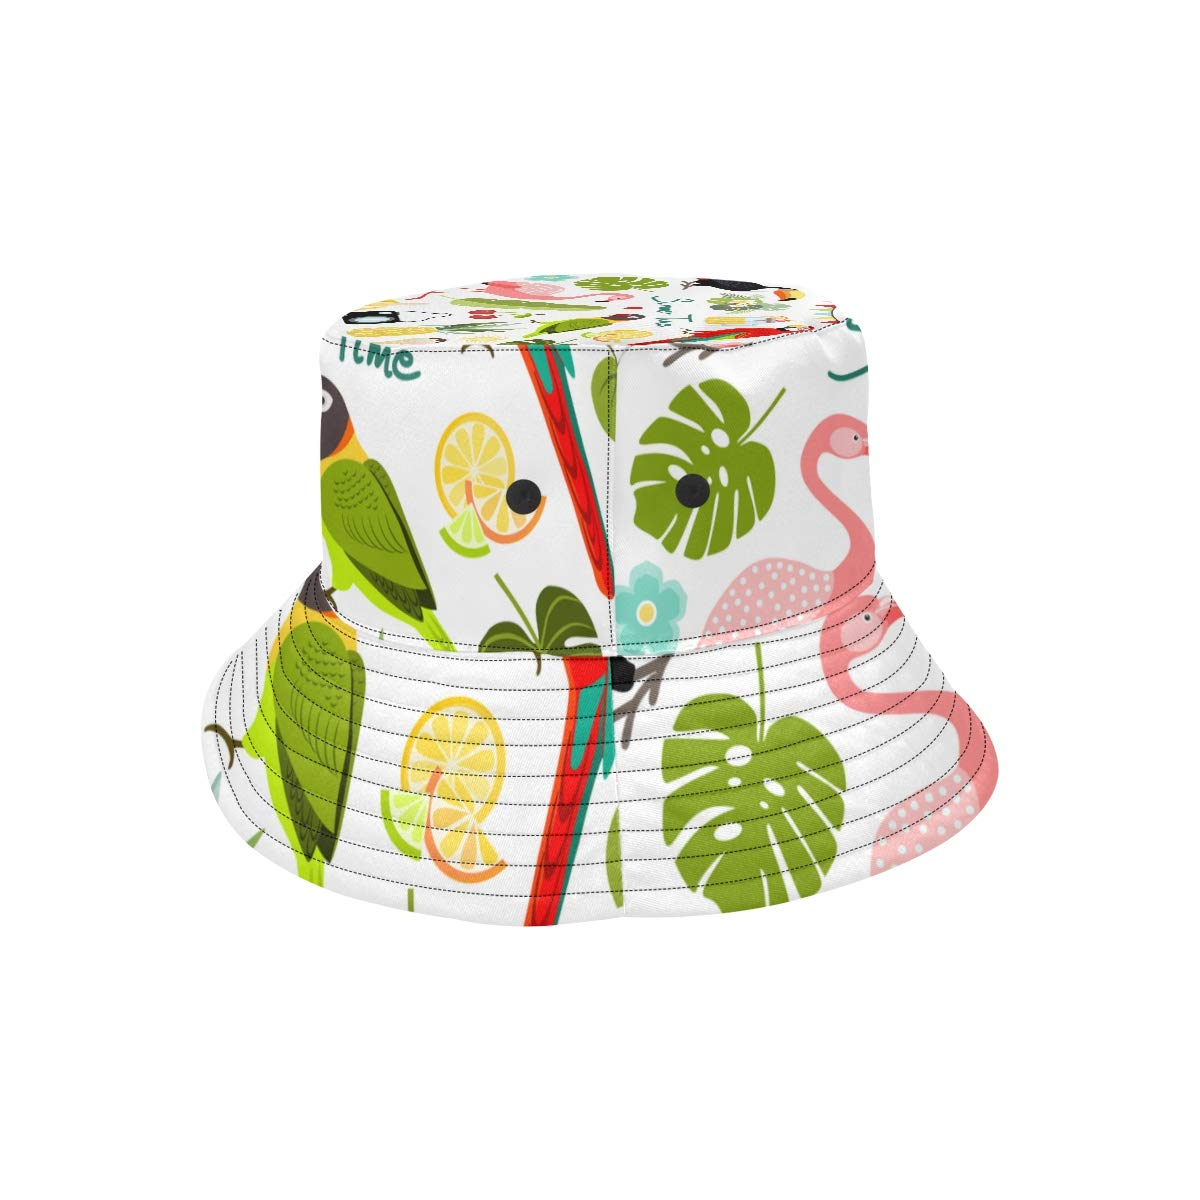 Summer Watermelon Bird Flamingo New Summer Unisex Cotton Fashion Fishing Sun Bucket Hats for Kid Teens Women and Men with Customize Top Packable Fisherman Cap for Outdoor Travel